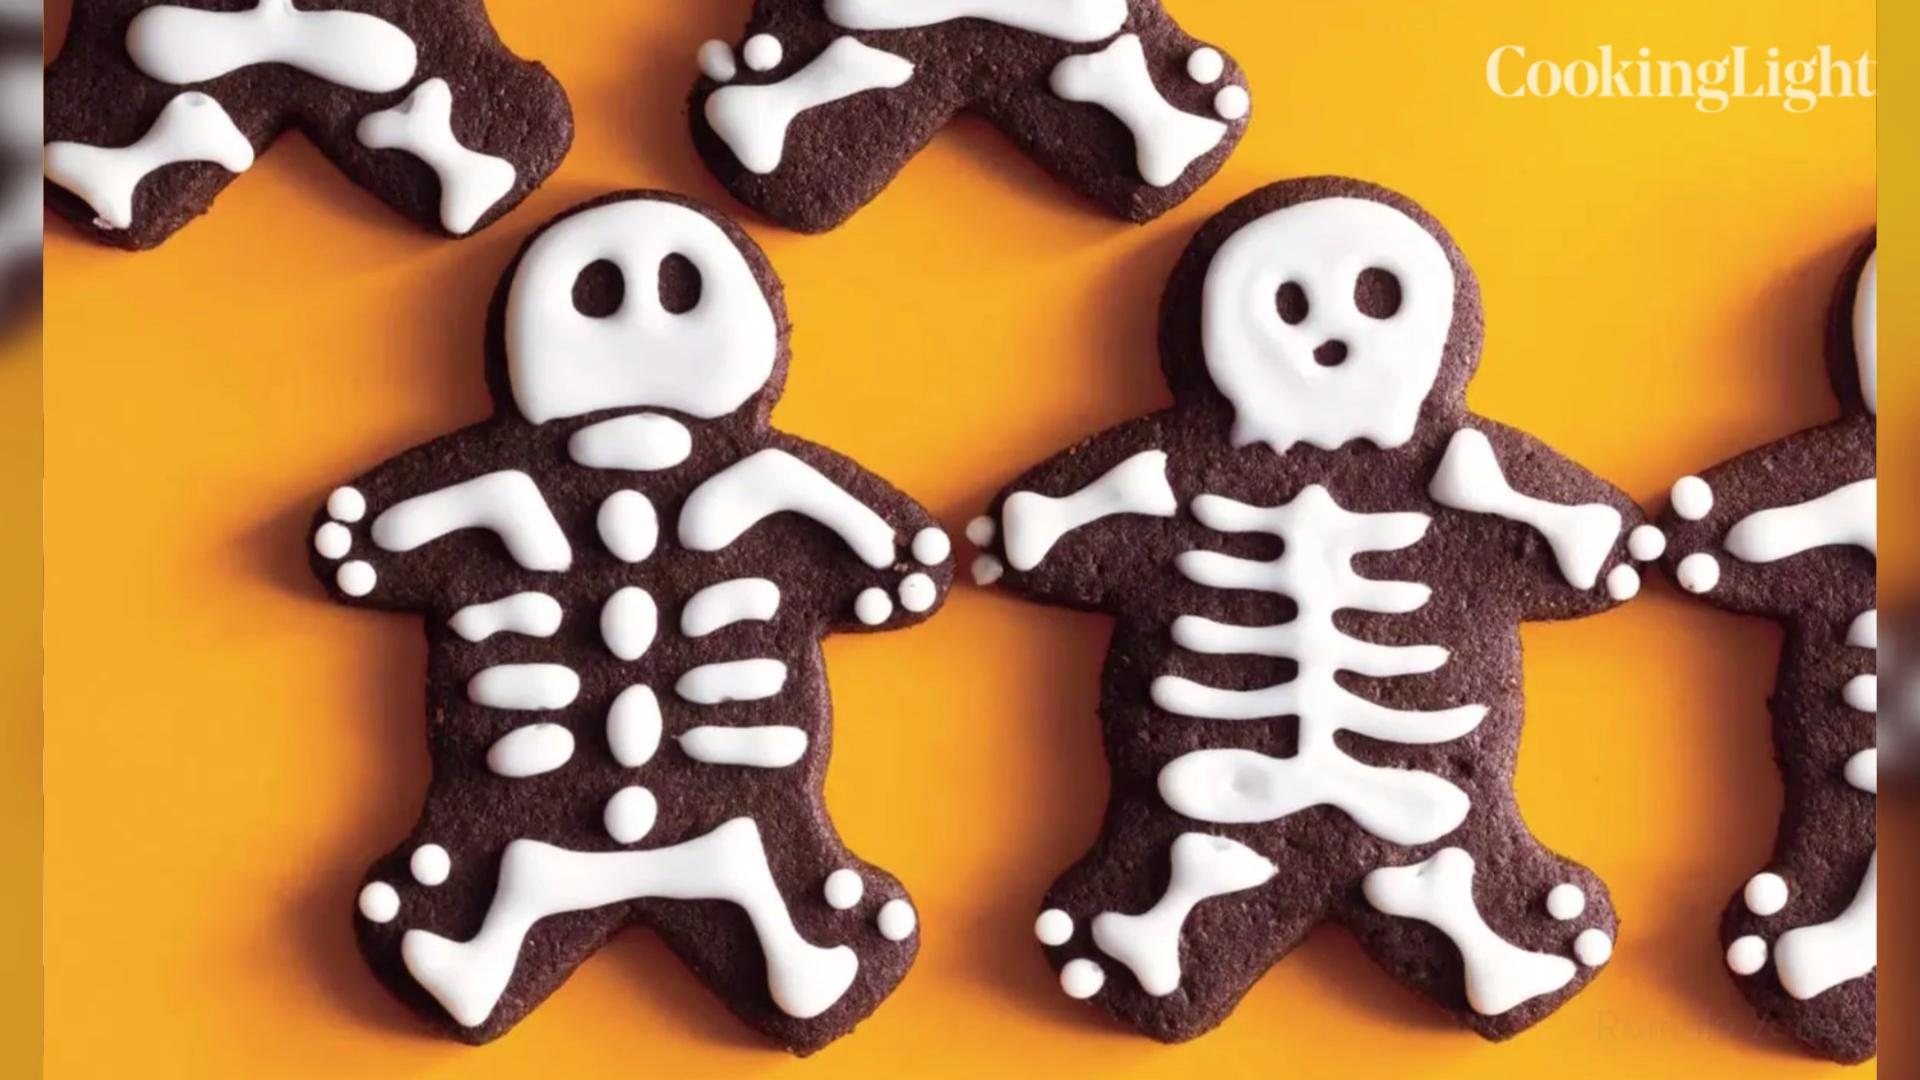 20 Nut-Free Halloween Treats Your Kids Will Love